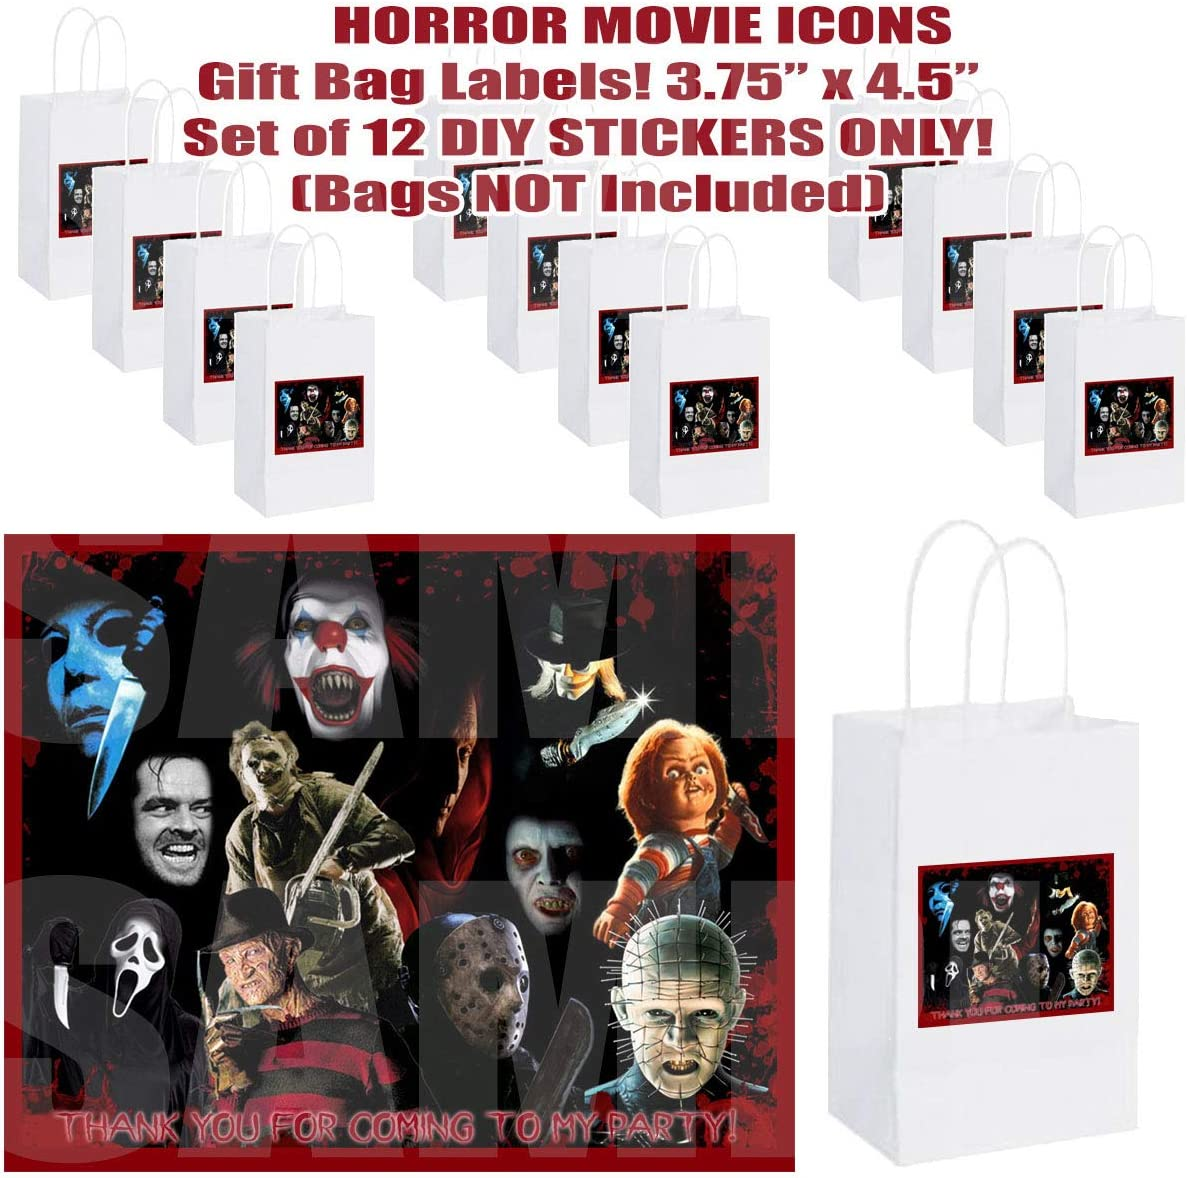 Horror Movie Icons Stickers Party Favors Supplies Decorations Gift Bag Label Stickers ONLY 3.75 x 4.75-12 pcs Halloween Film Jason Freddy Krueger Leatherface Michael Myers Chucky Pinhead Screamer